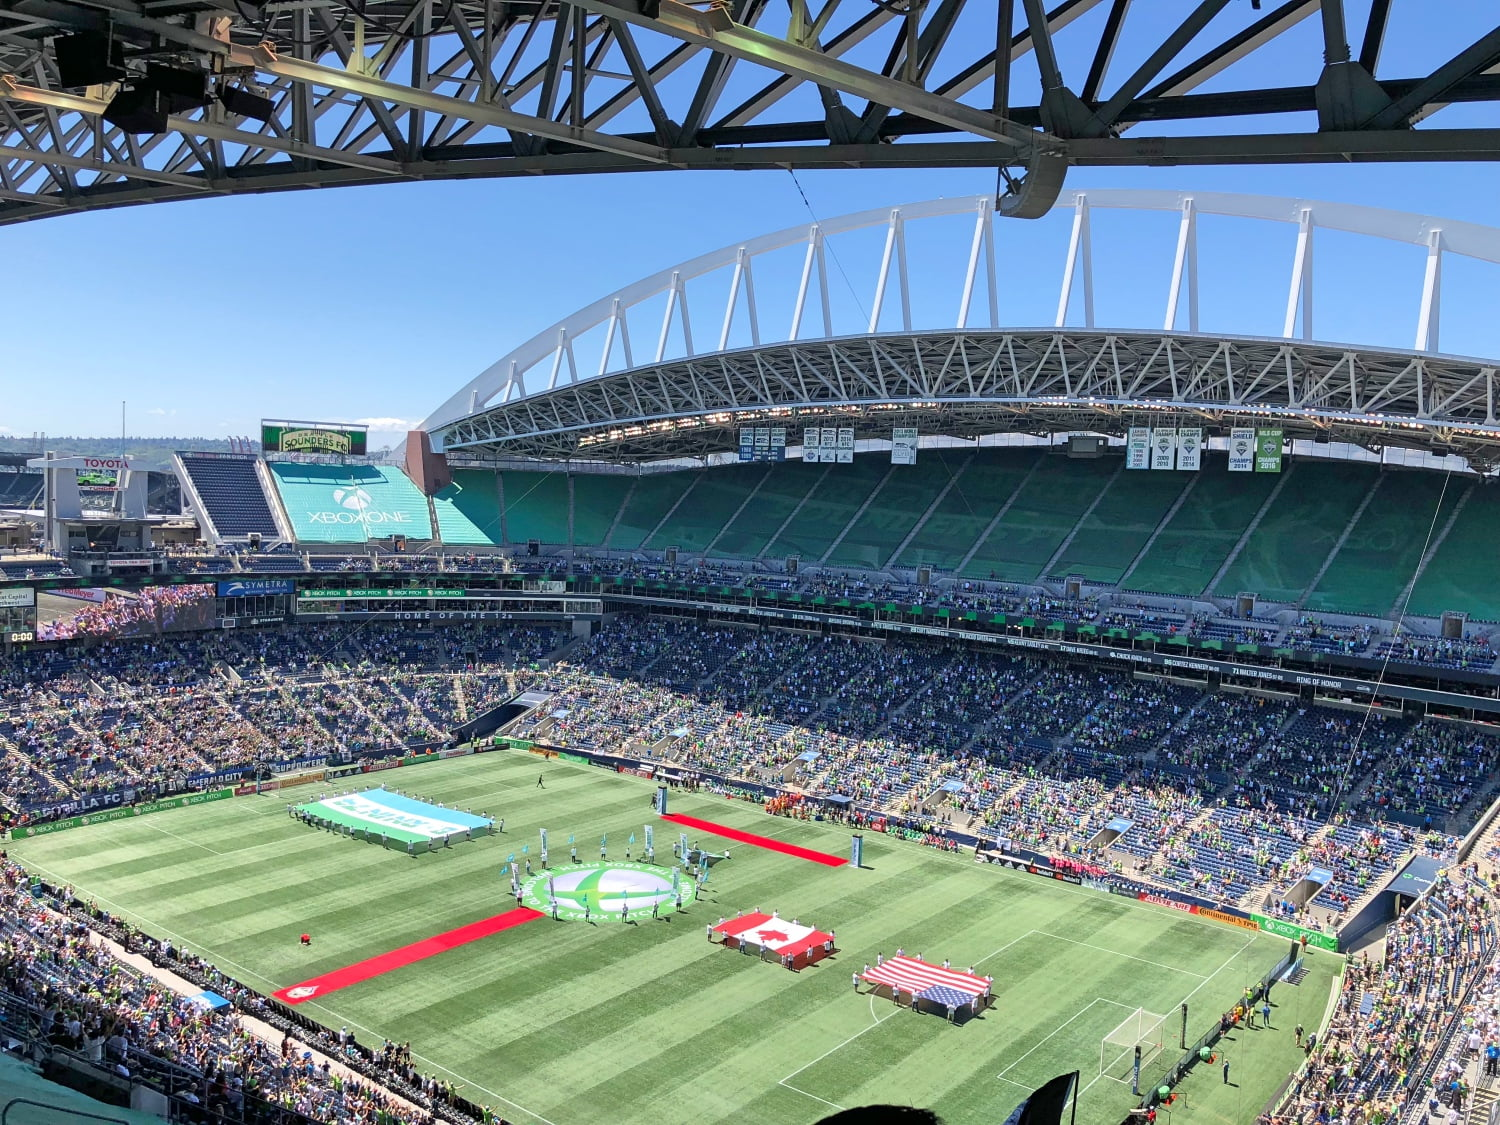 Century Link Field in Seattle 2018 (Inside View)